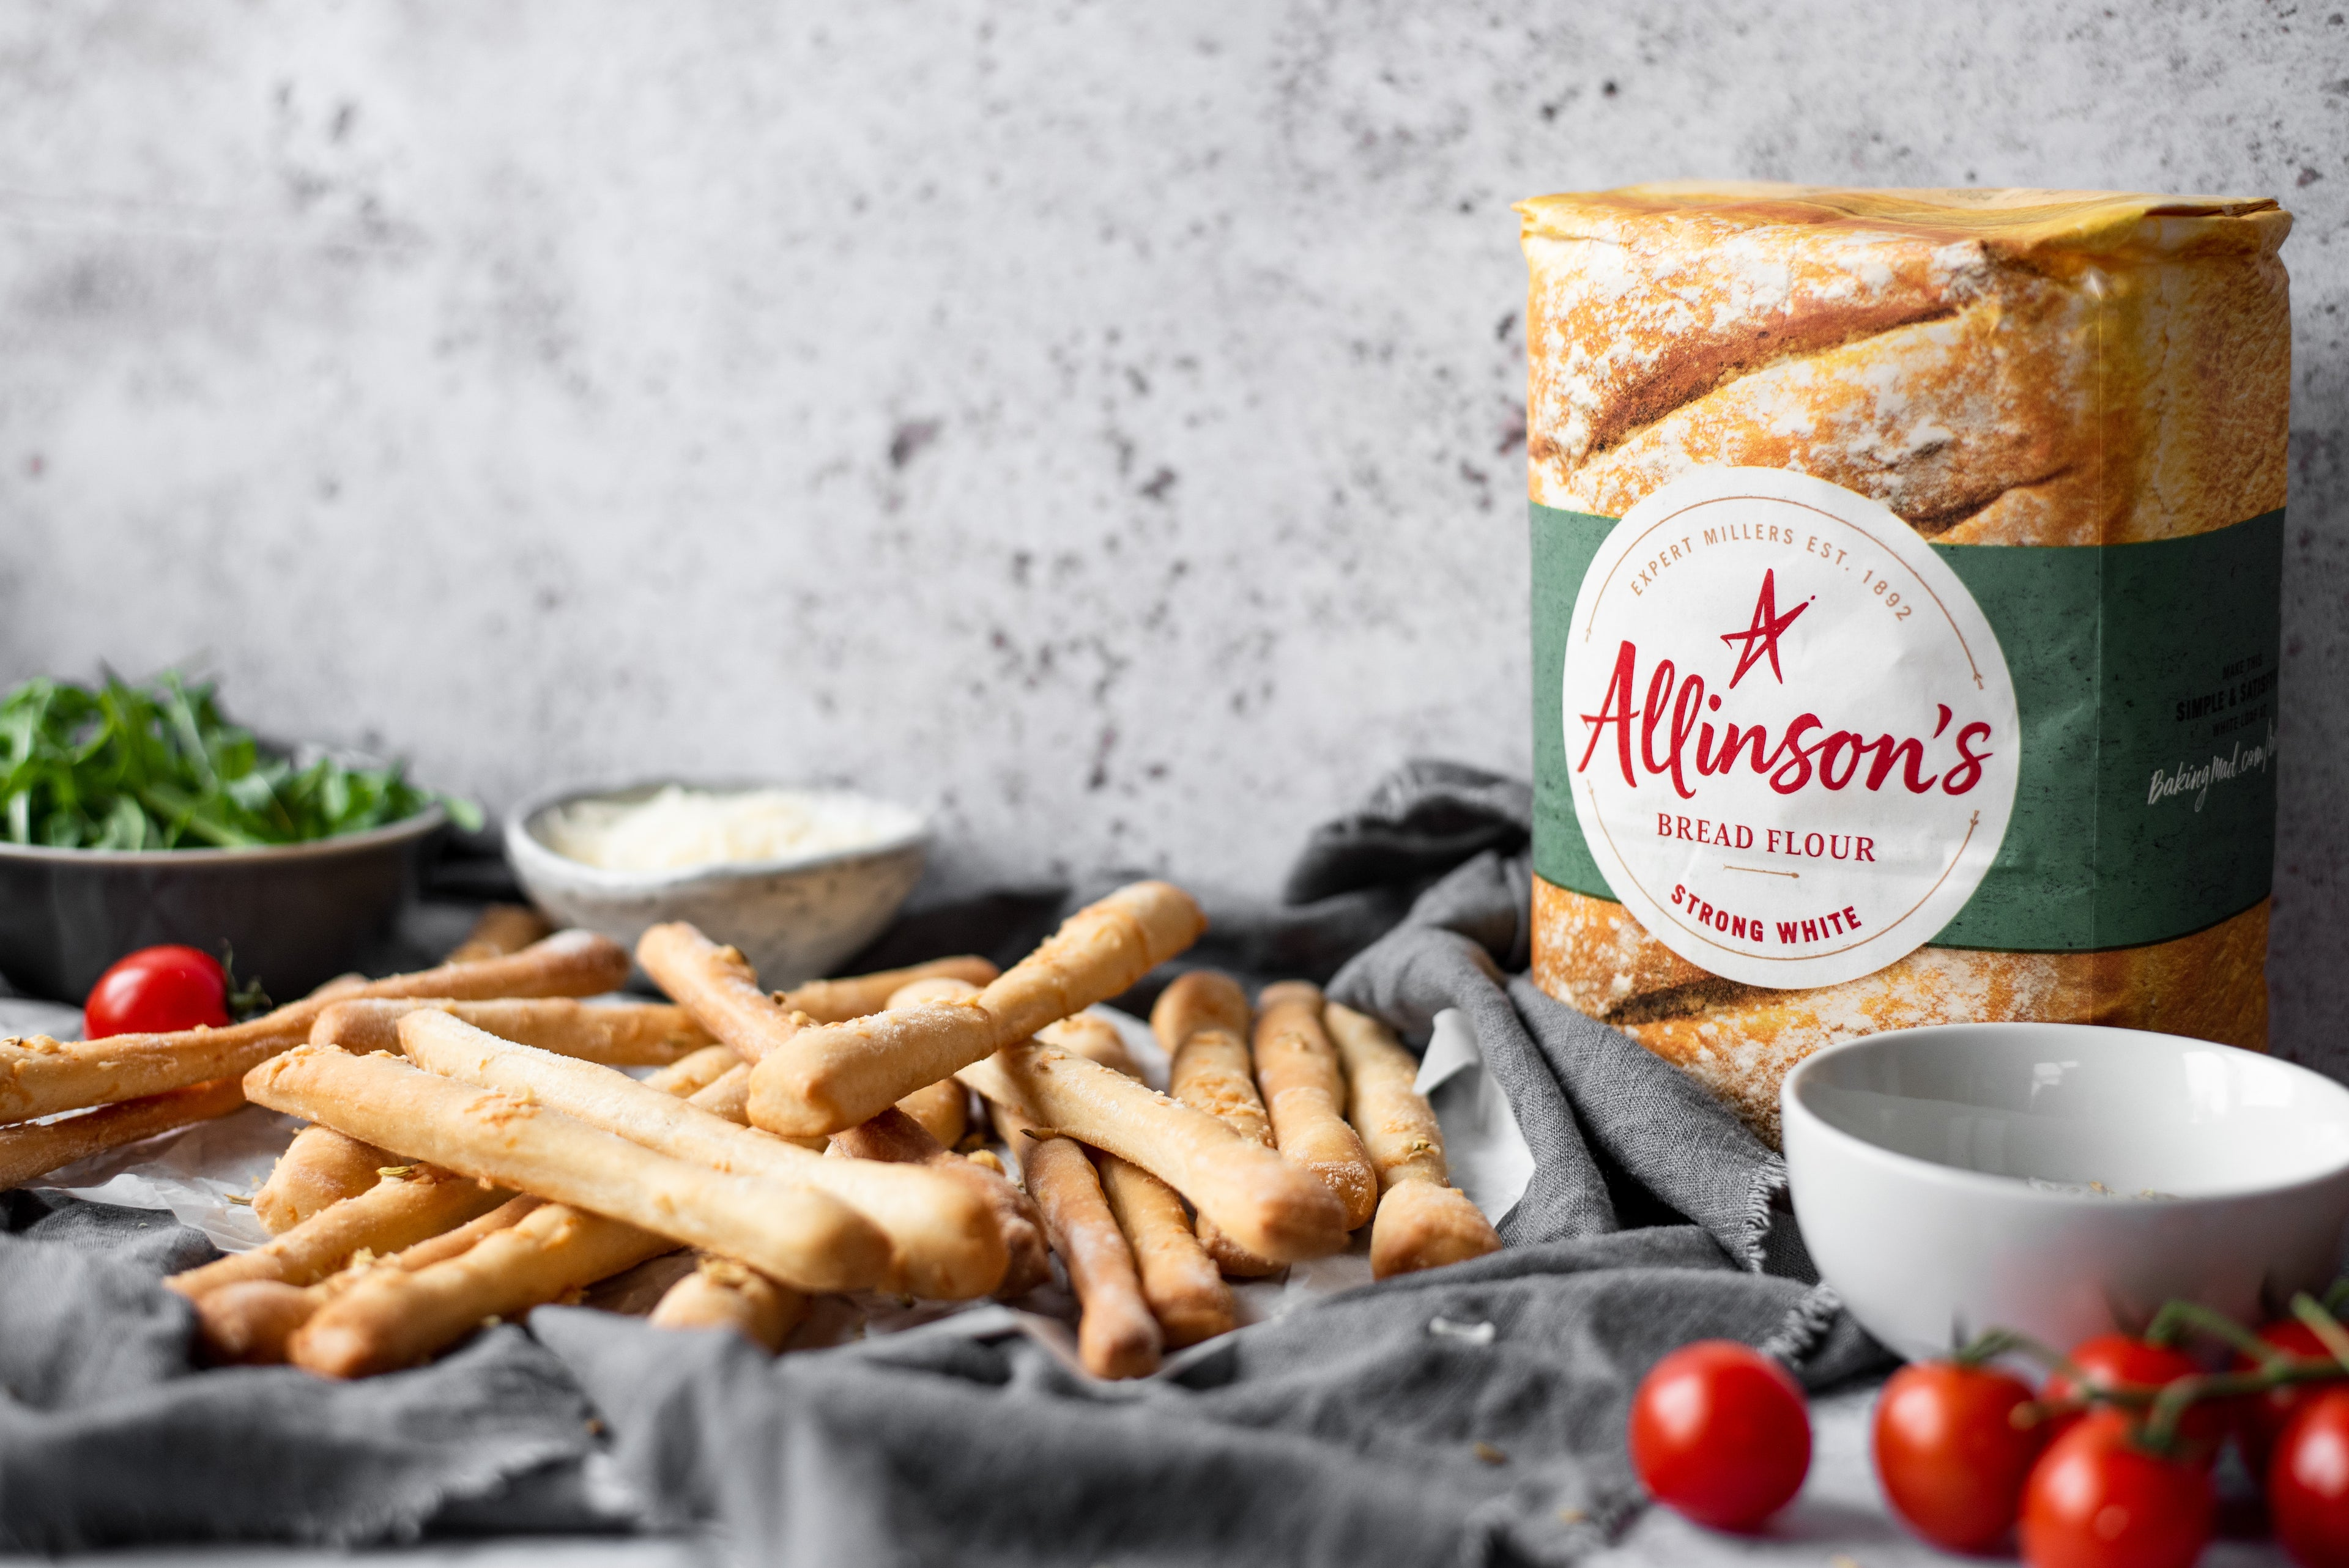 Allinsons-Bread-Sticks-FULL-RES-5.jpg